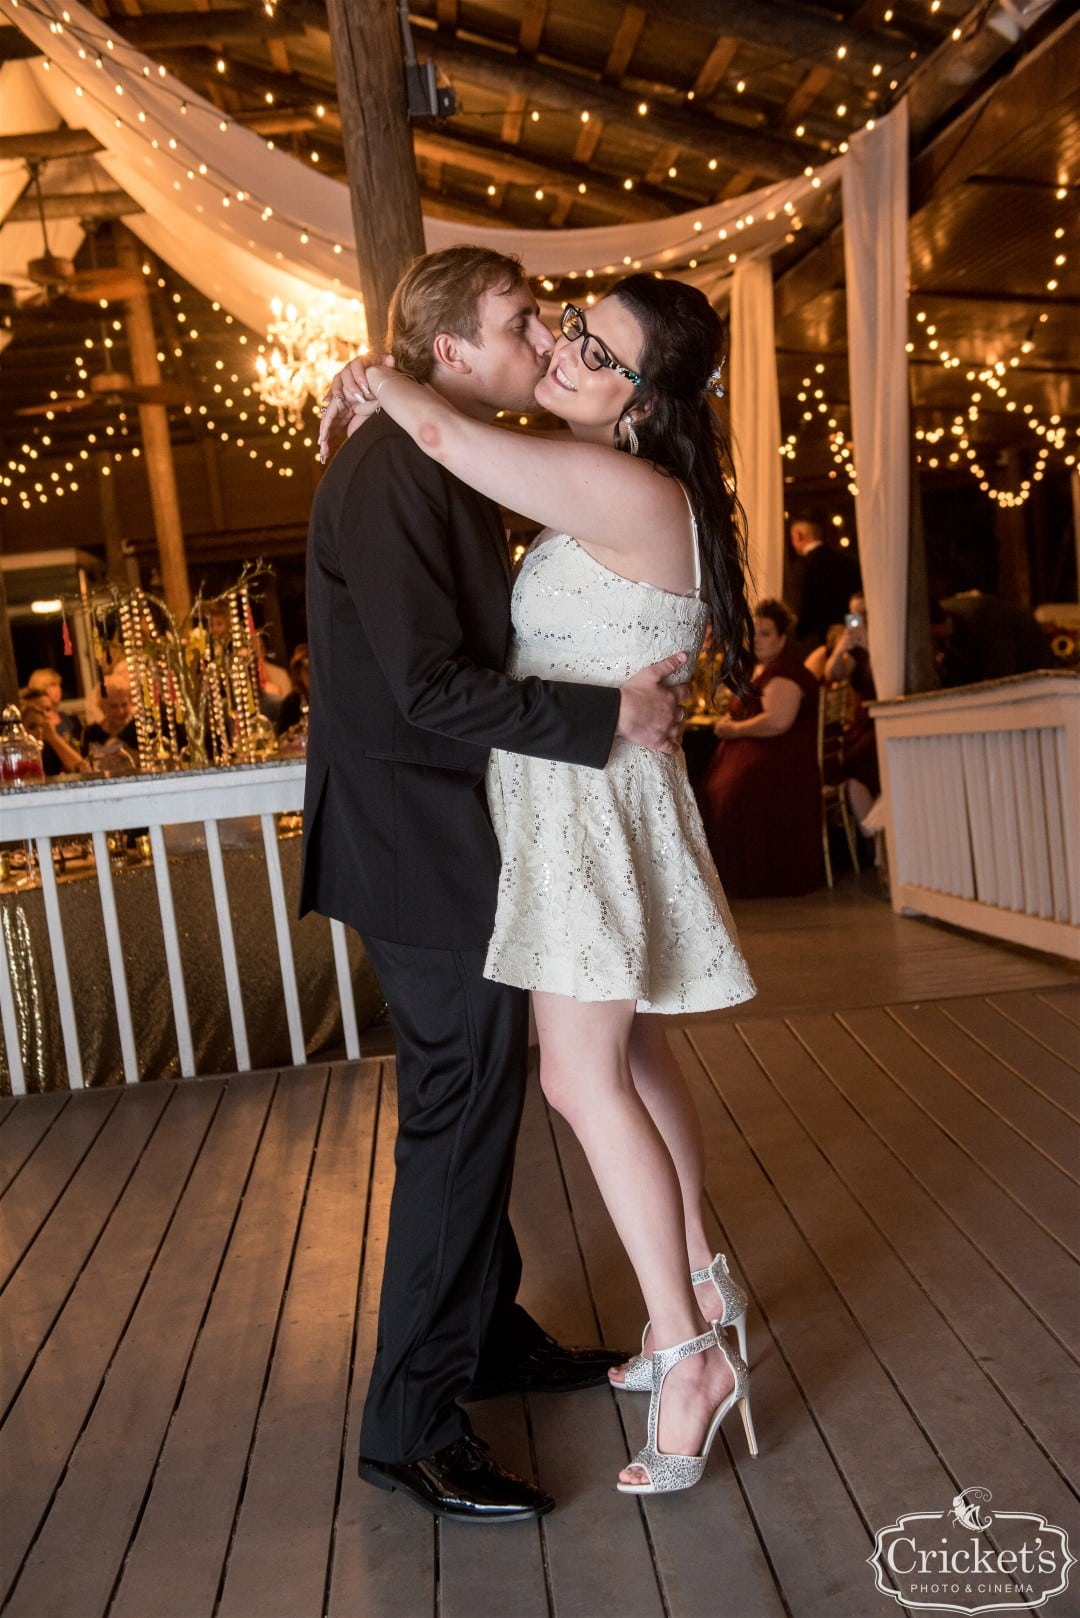 Jesea and Evan's first dance